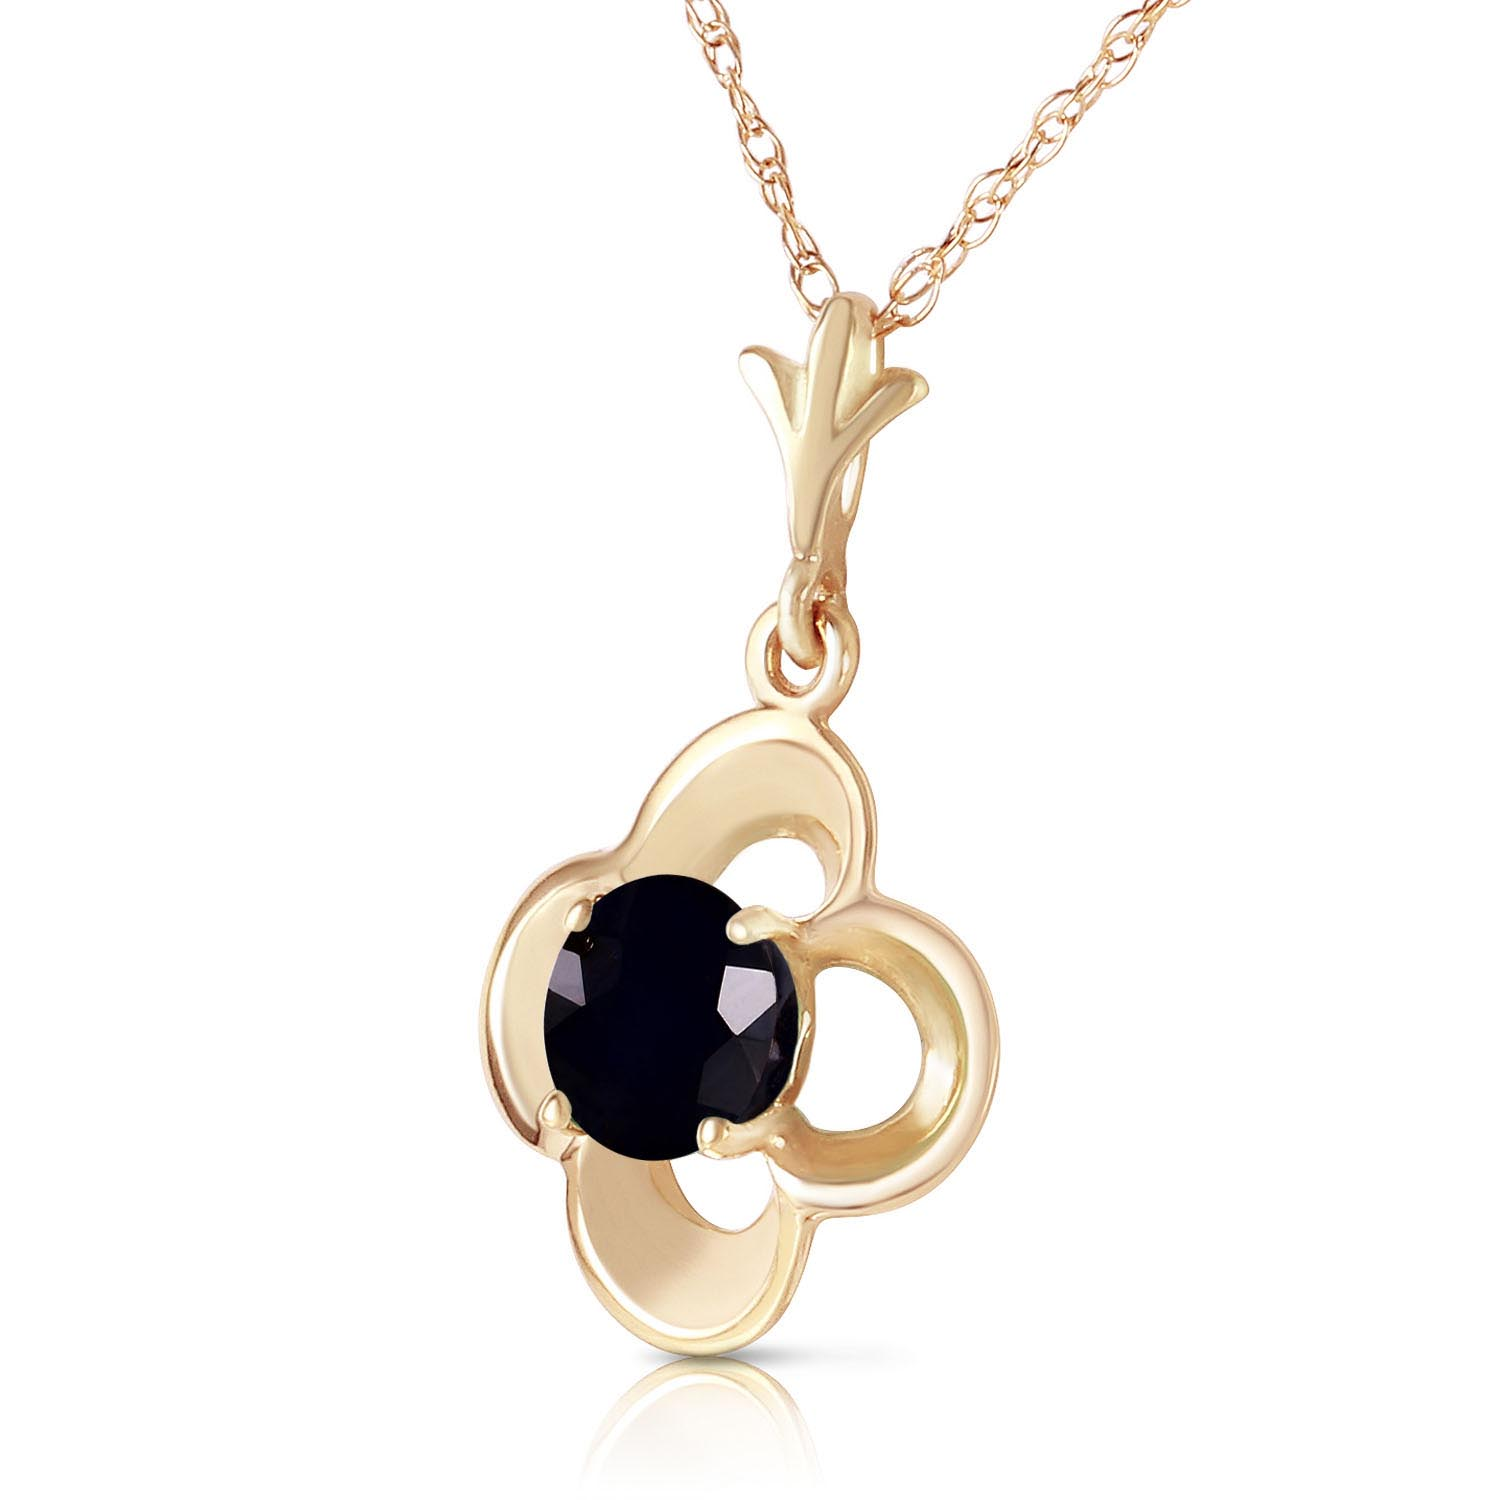 Round Cut Diamond Pendant Necklace 0.5 ct in 9ct Gold